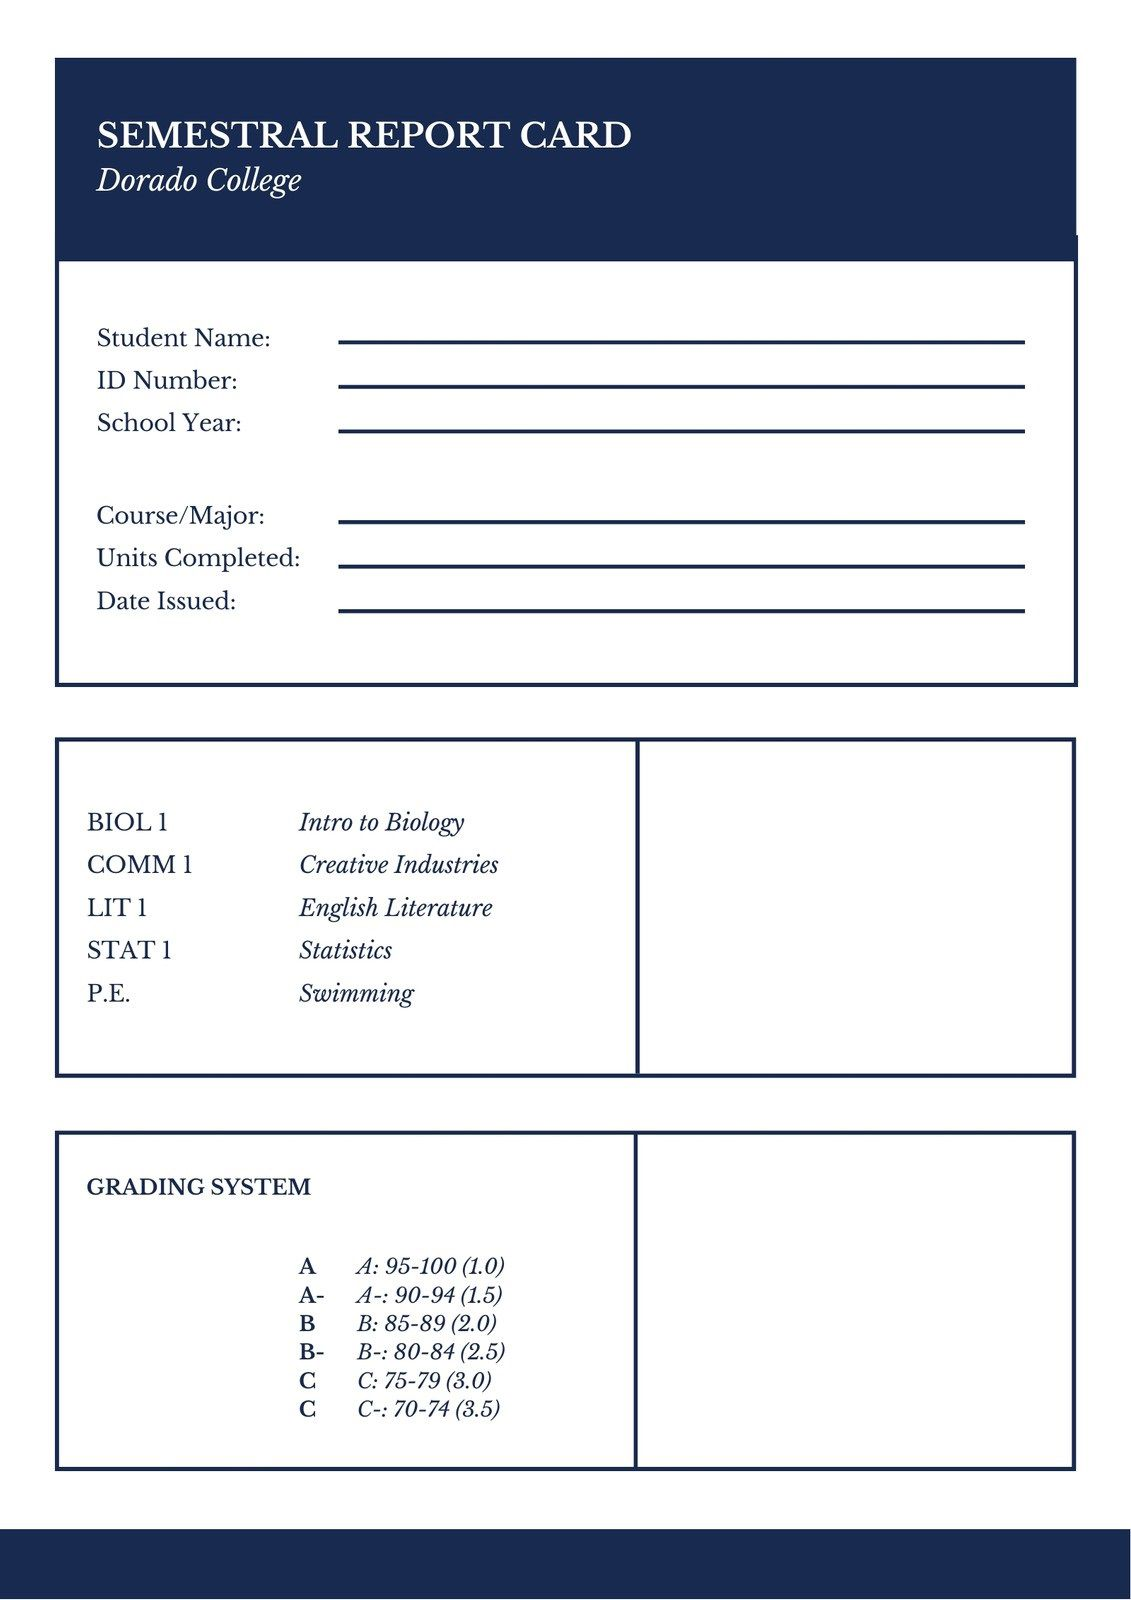 004 Impressive College Report Card Template Photo  Free FakeFull